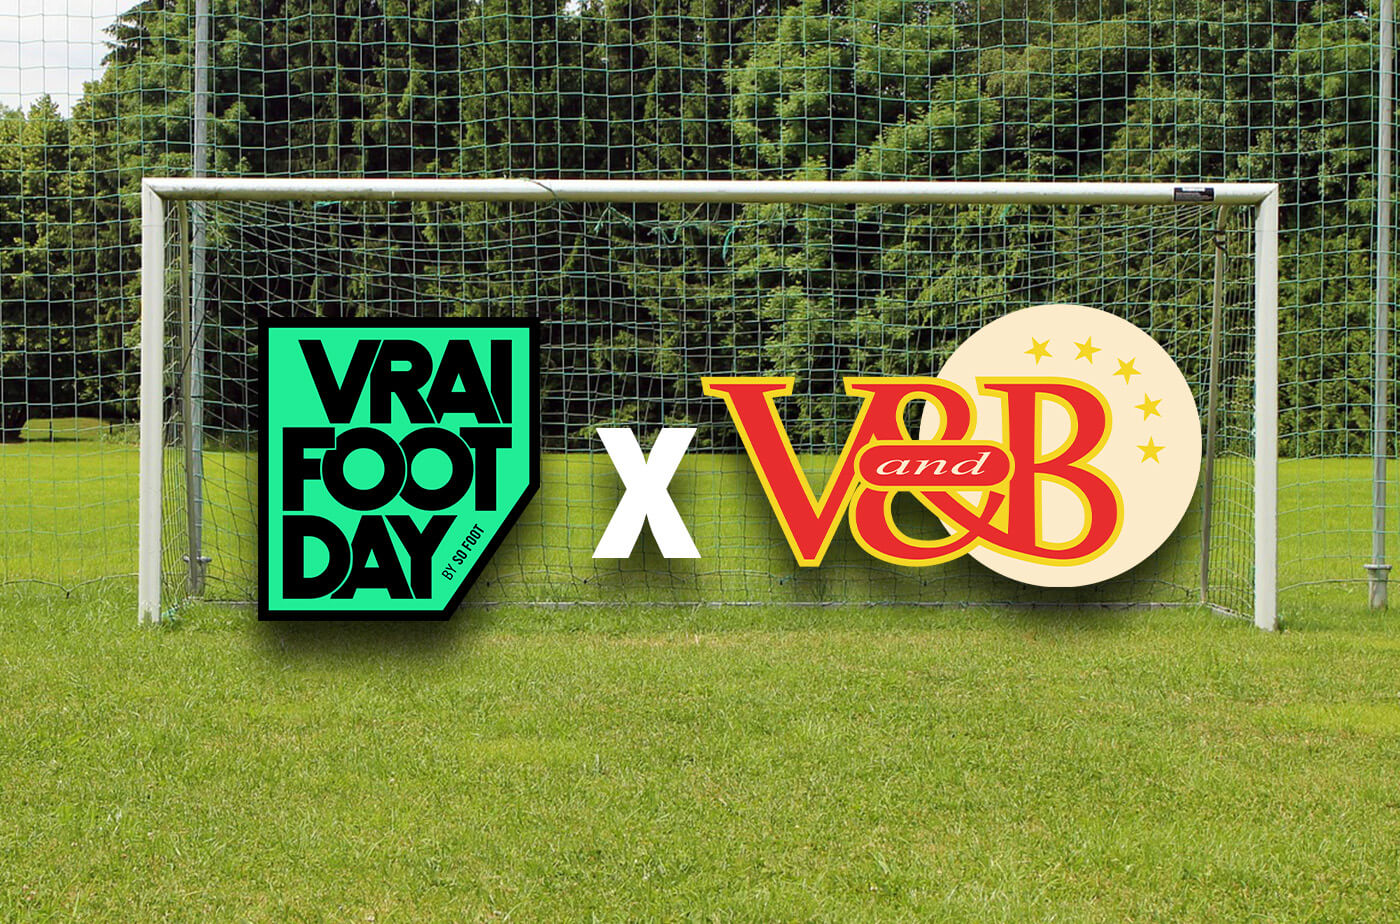 vrai foot day x V and B